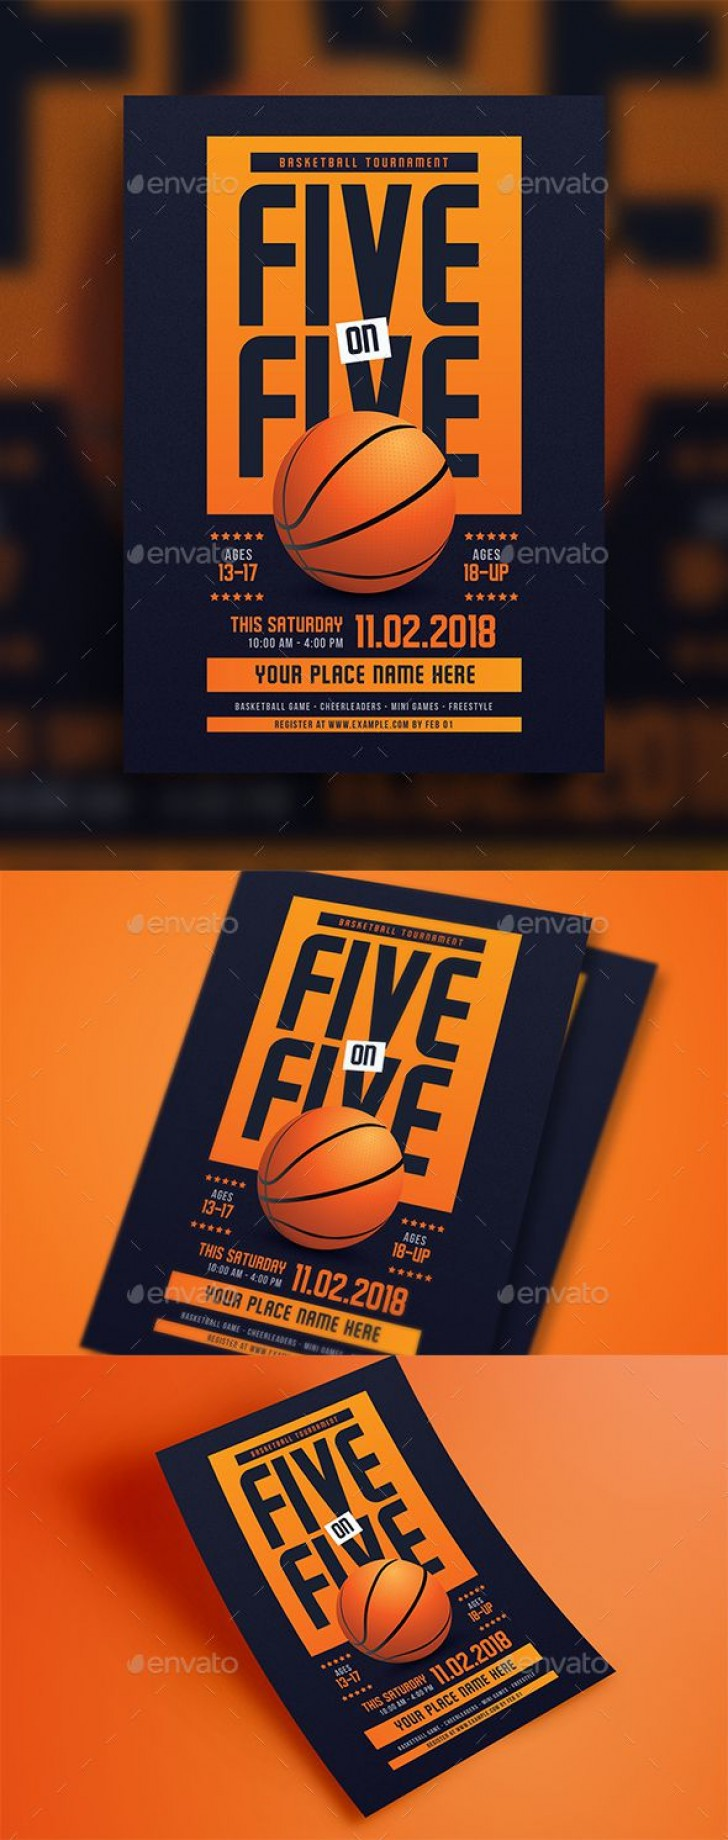 009 Striking Basketball Tournament Flyer Template Highest Quality  3 On Free728